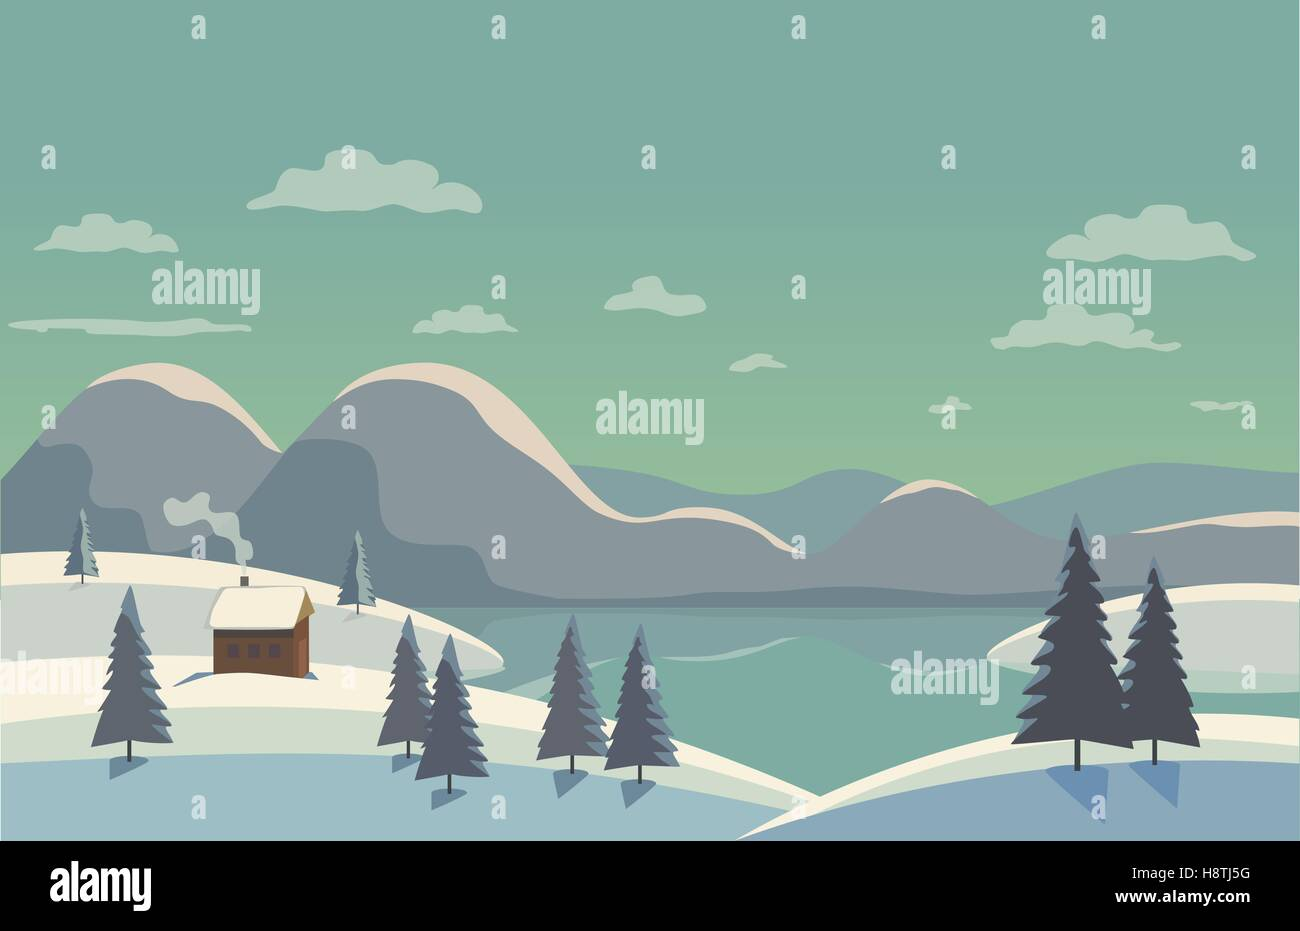 Winter nature landscape. Mountain river in snowy glacier valley. House on bank under snow. Lake view among hills - Stock Vector